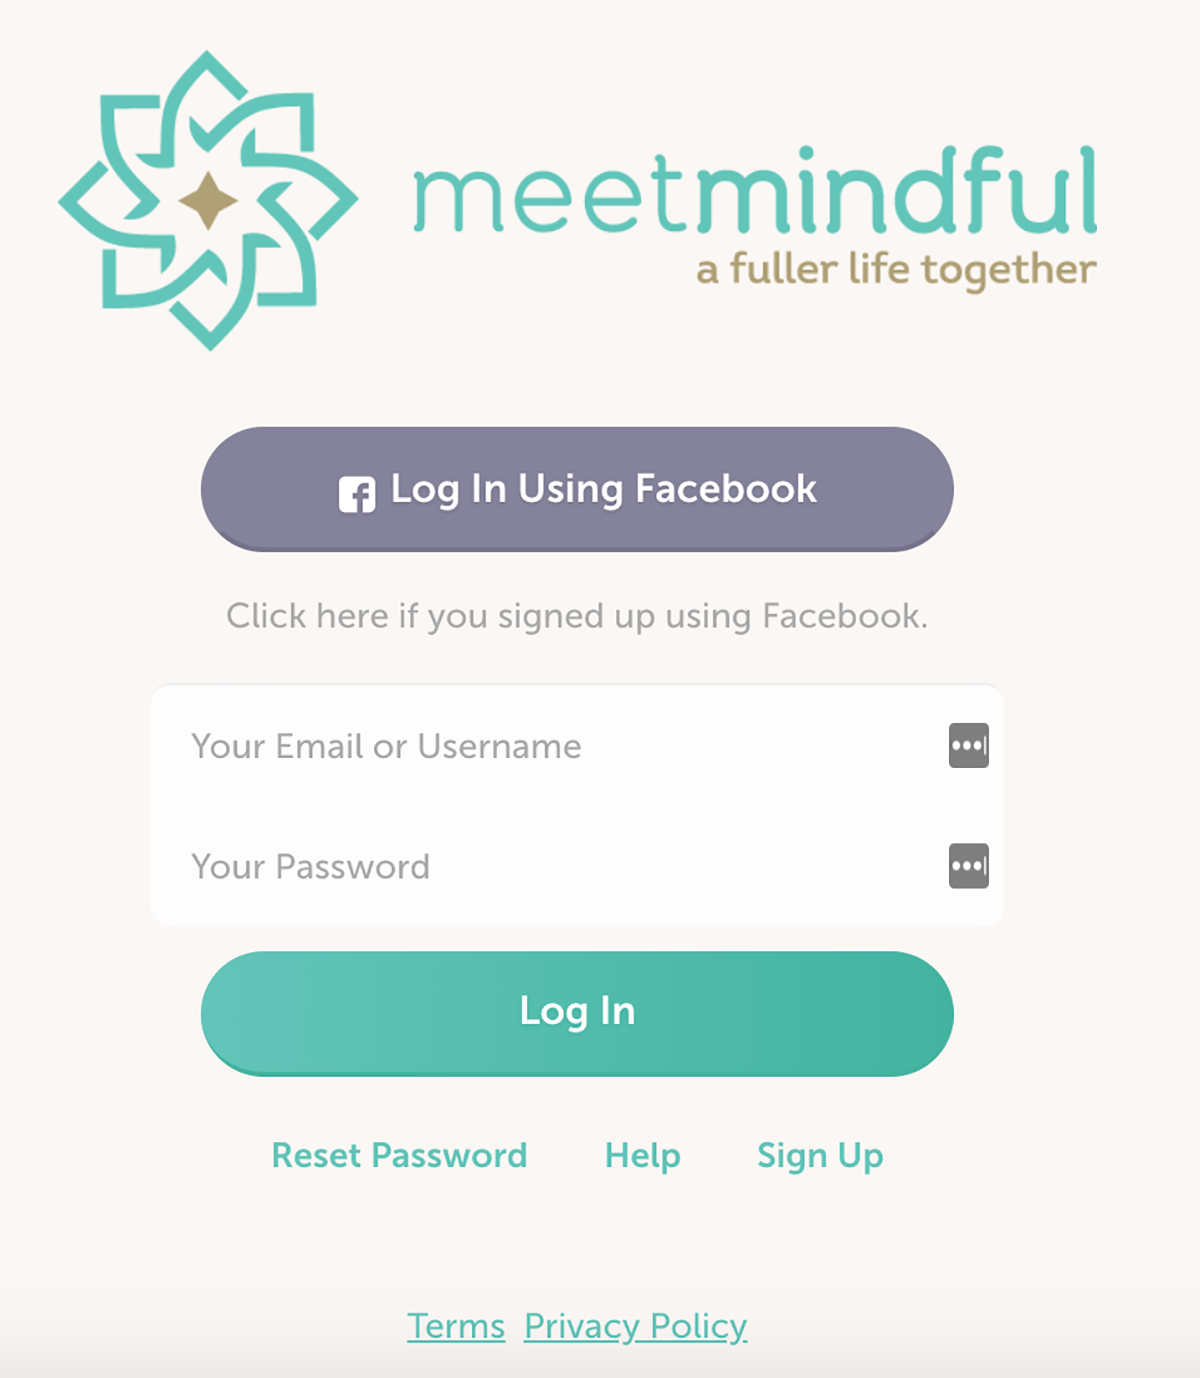 MeetMindful Registration